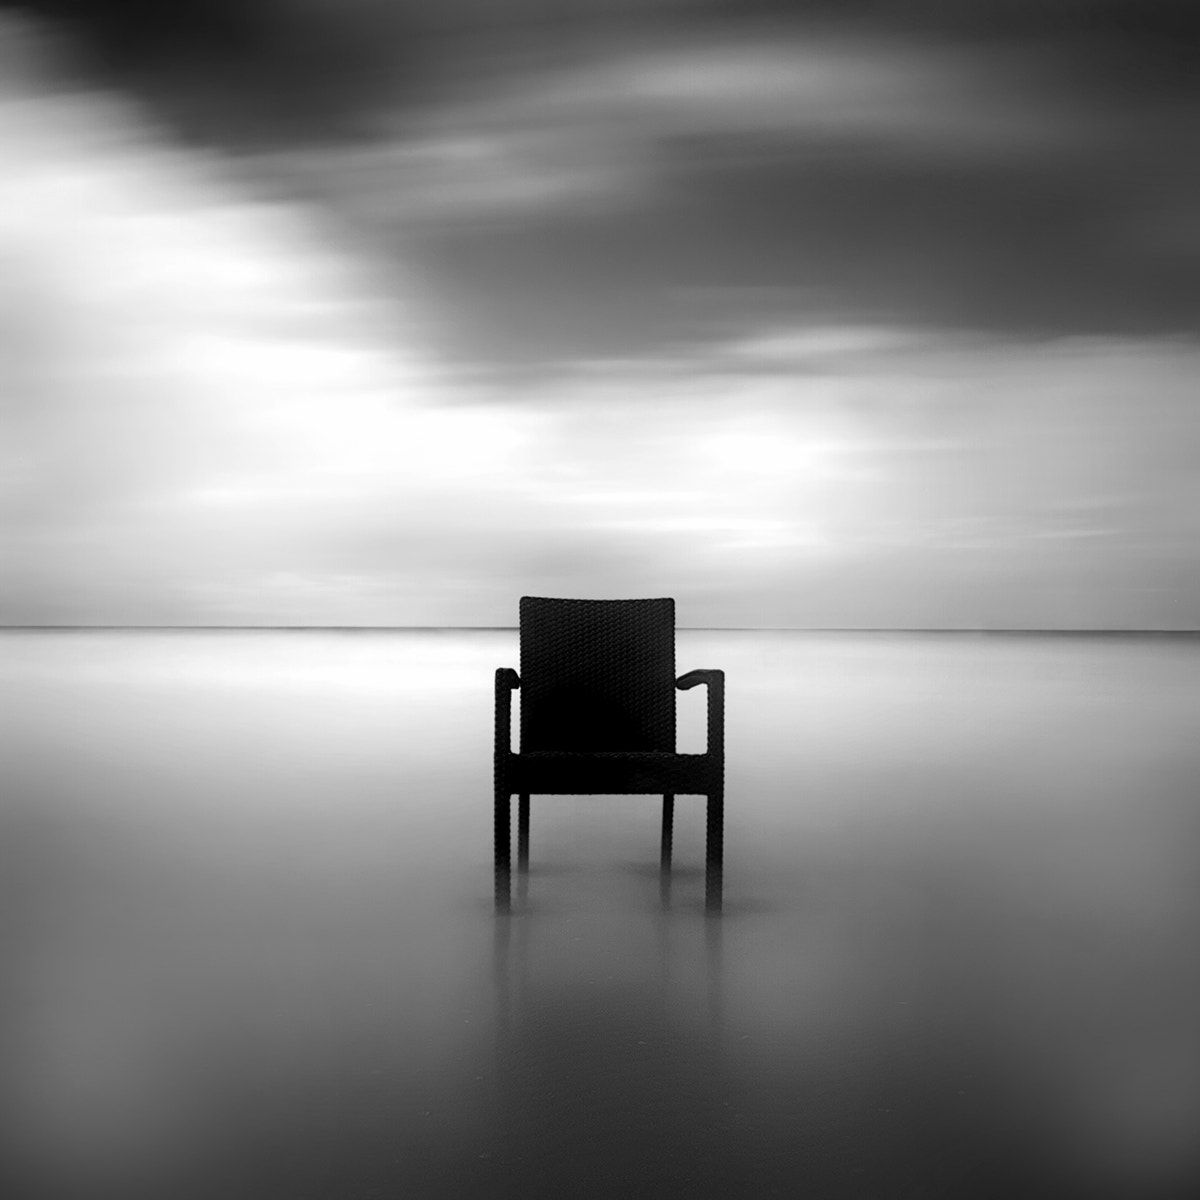 Photograph lonely by Kees Smans on 500px